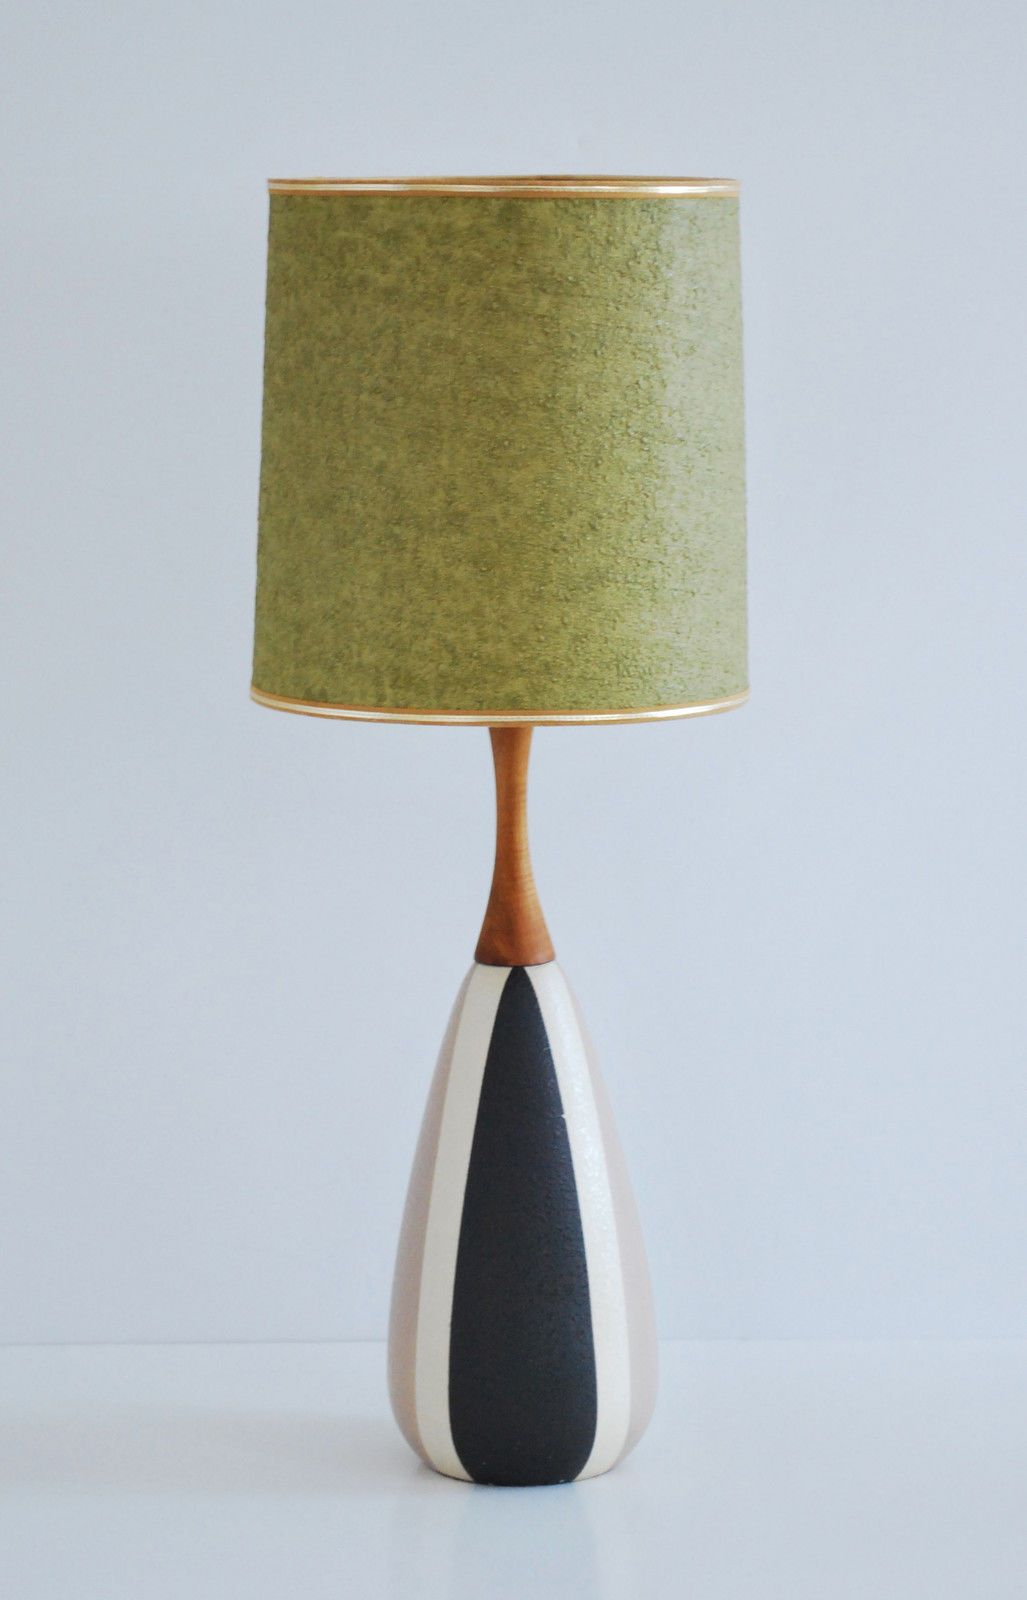 Modern Vintage Lights Mid Century Modern Vintage Danish Ceramic Teak Table Lamp